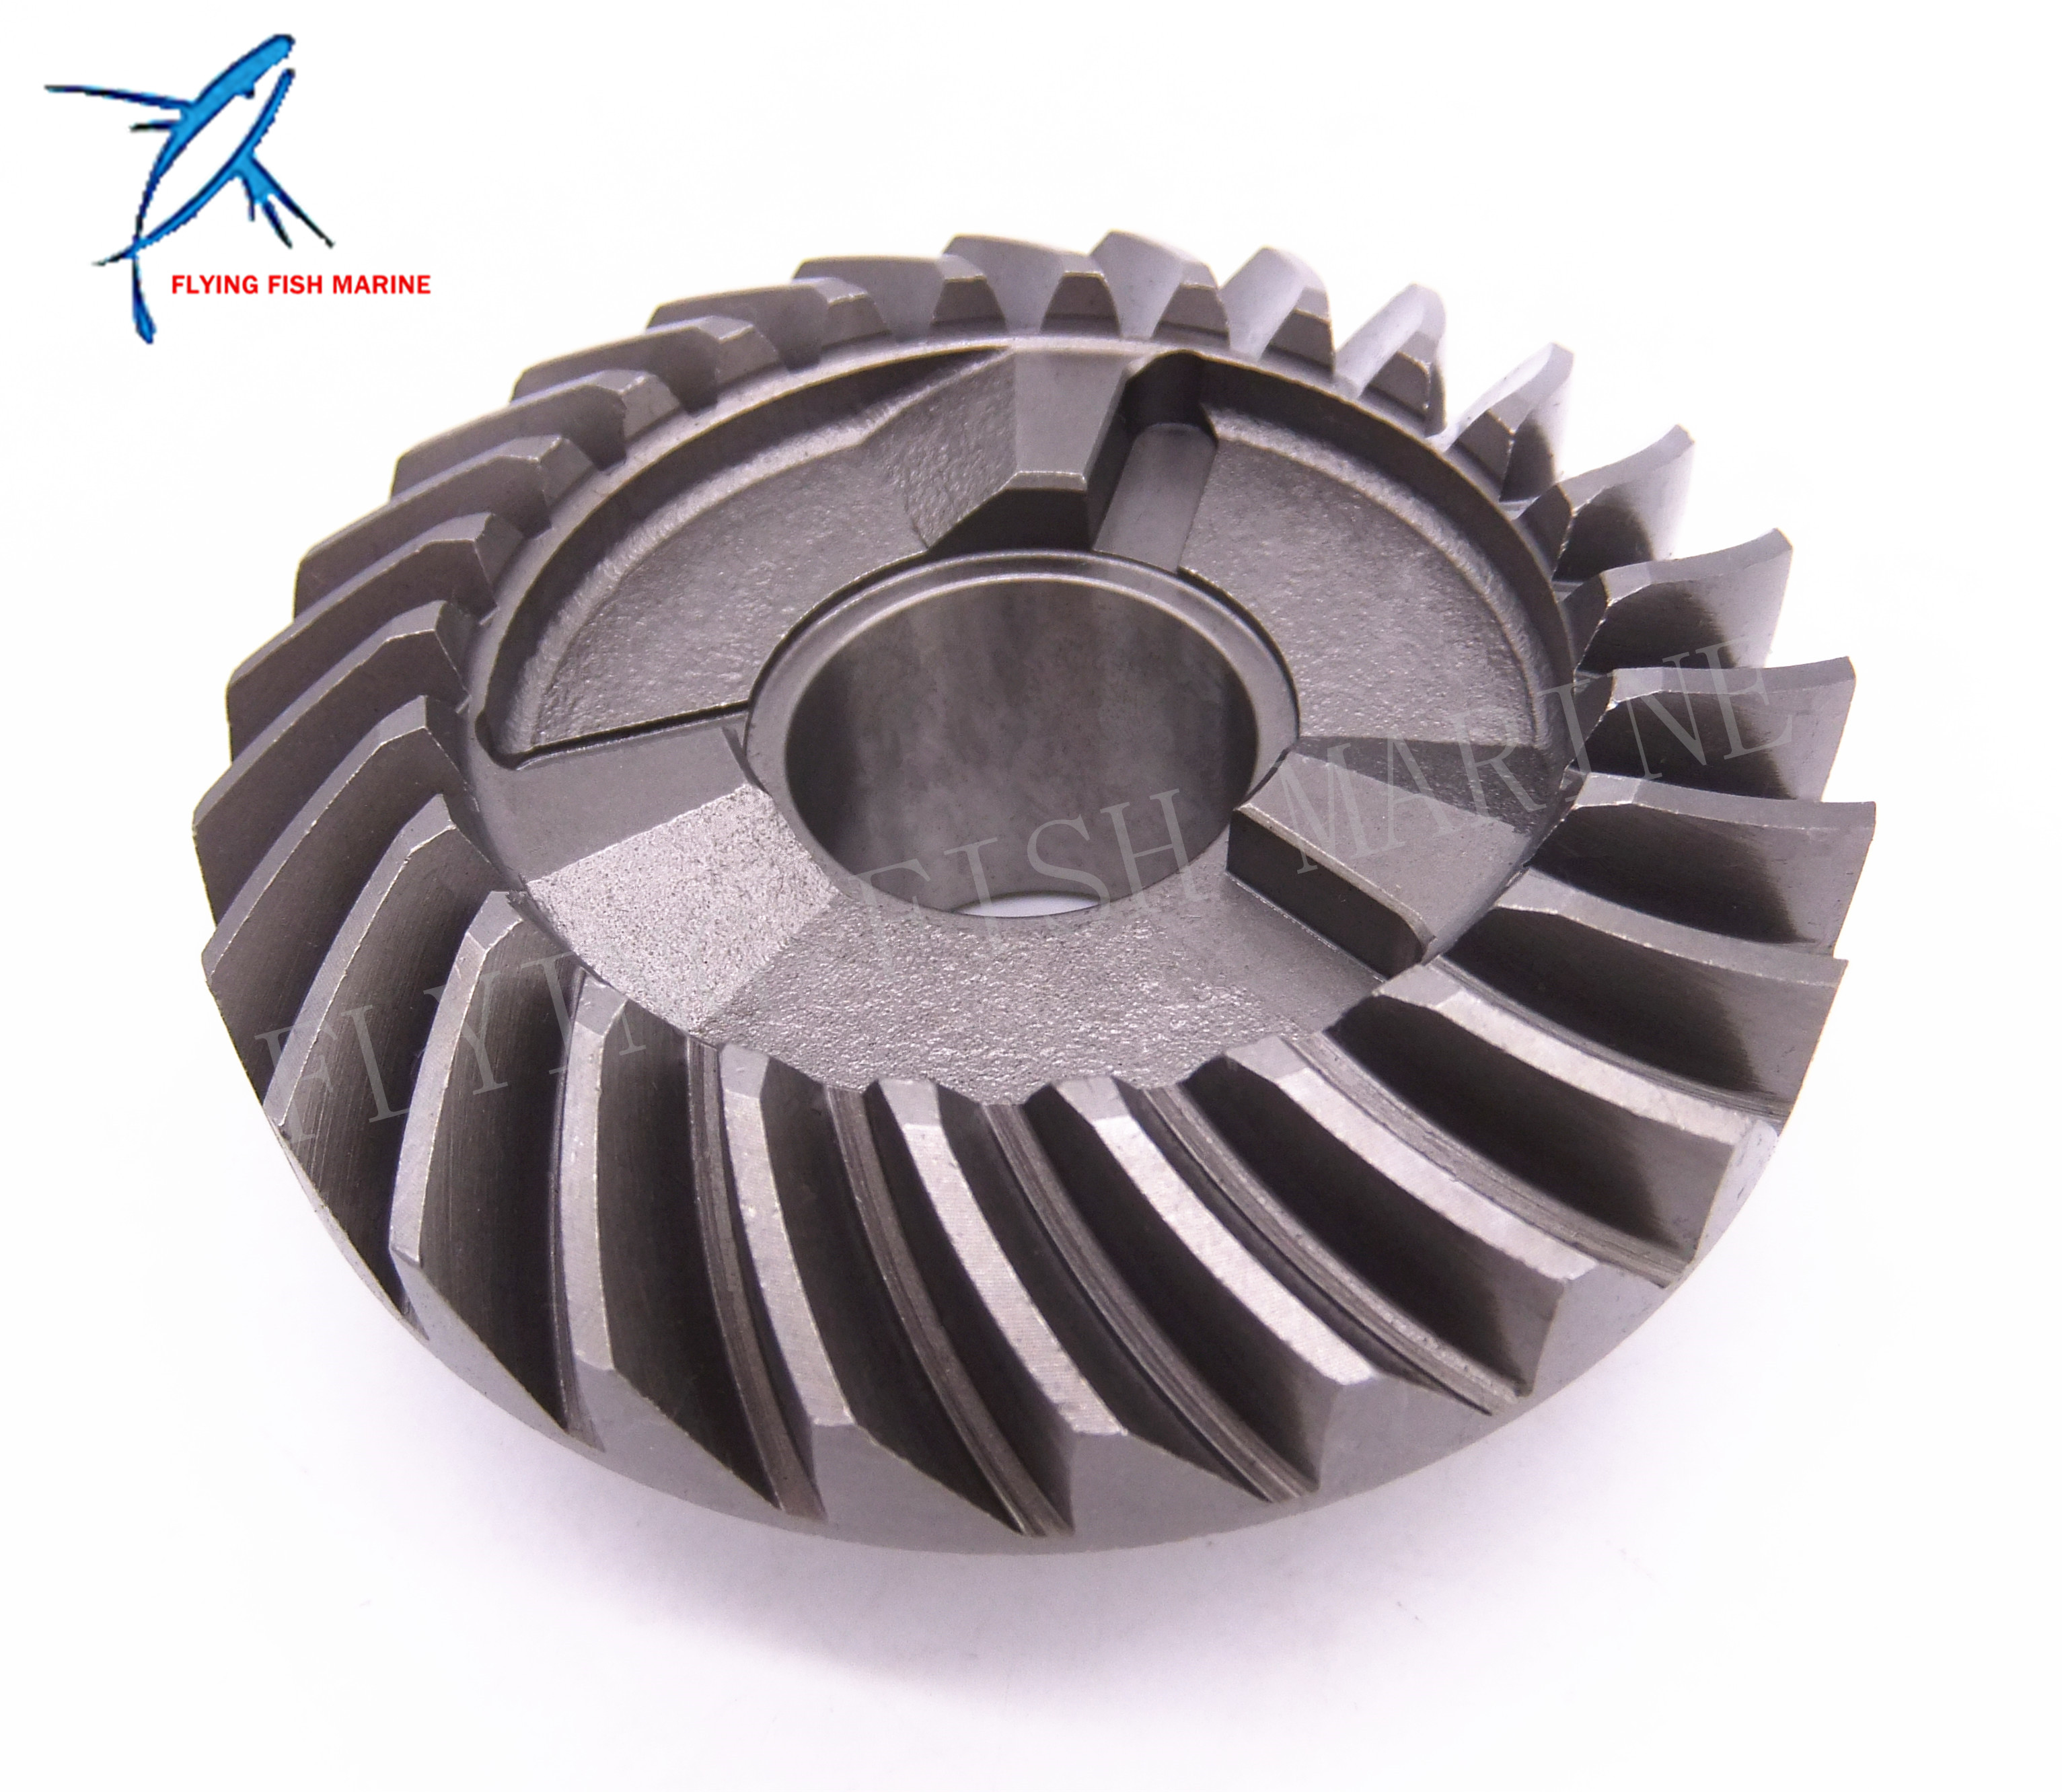 Delicious Boat Motor Reverse Gear T85-04000005 For Parsun Hdx Outboard Engine 2-stroke T75 T85 T90 Automobiles & Motorcycles free Shipping Quell Summer Thirst Boat Parts & Accessories